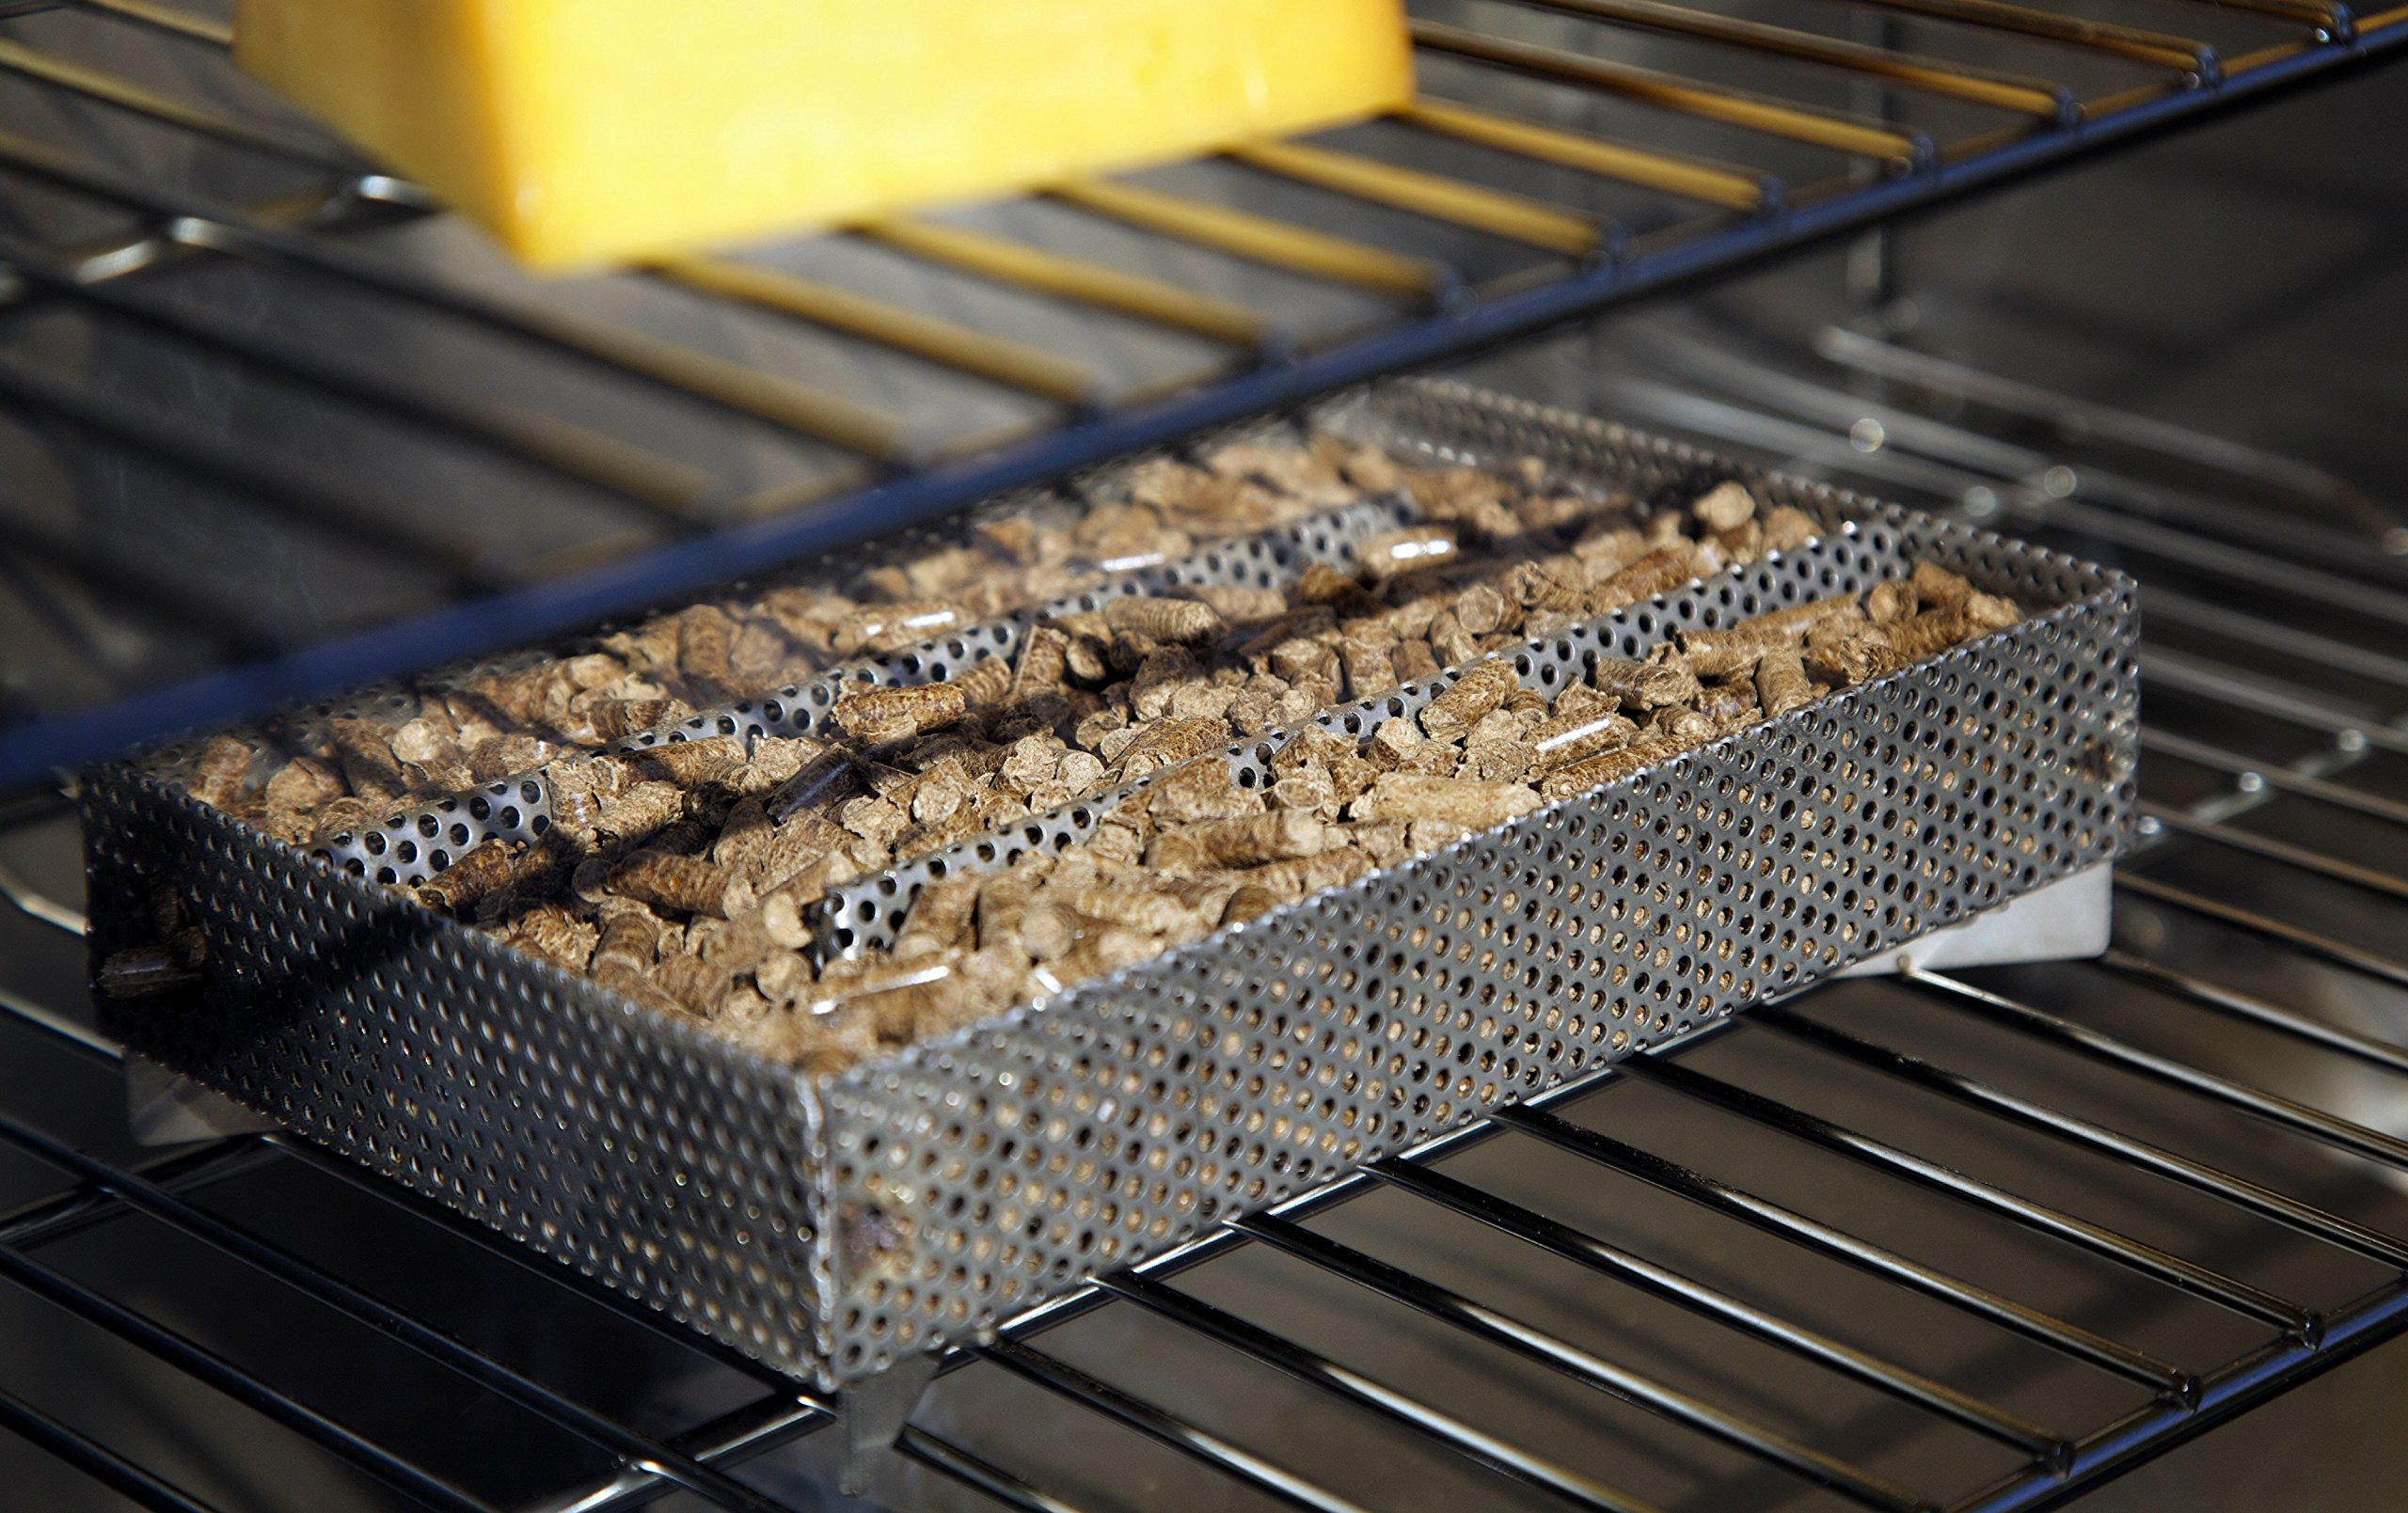 A-MAZE-N Maze 5'' L x 8'' W Pellet Smoker Prefilled With 100% Wood Hickory BBQ Pellets by A-MAZE-N (Image #4)